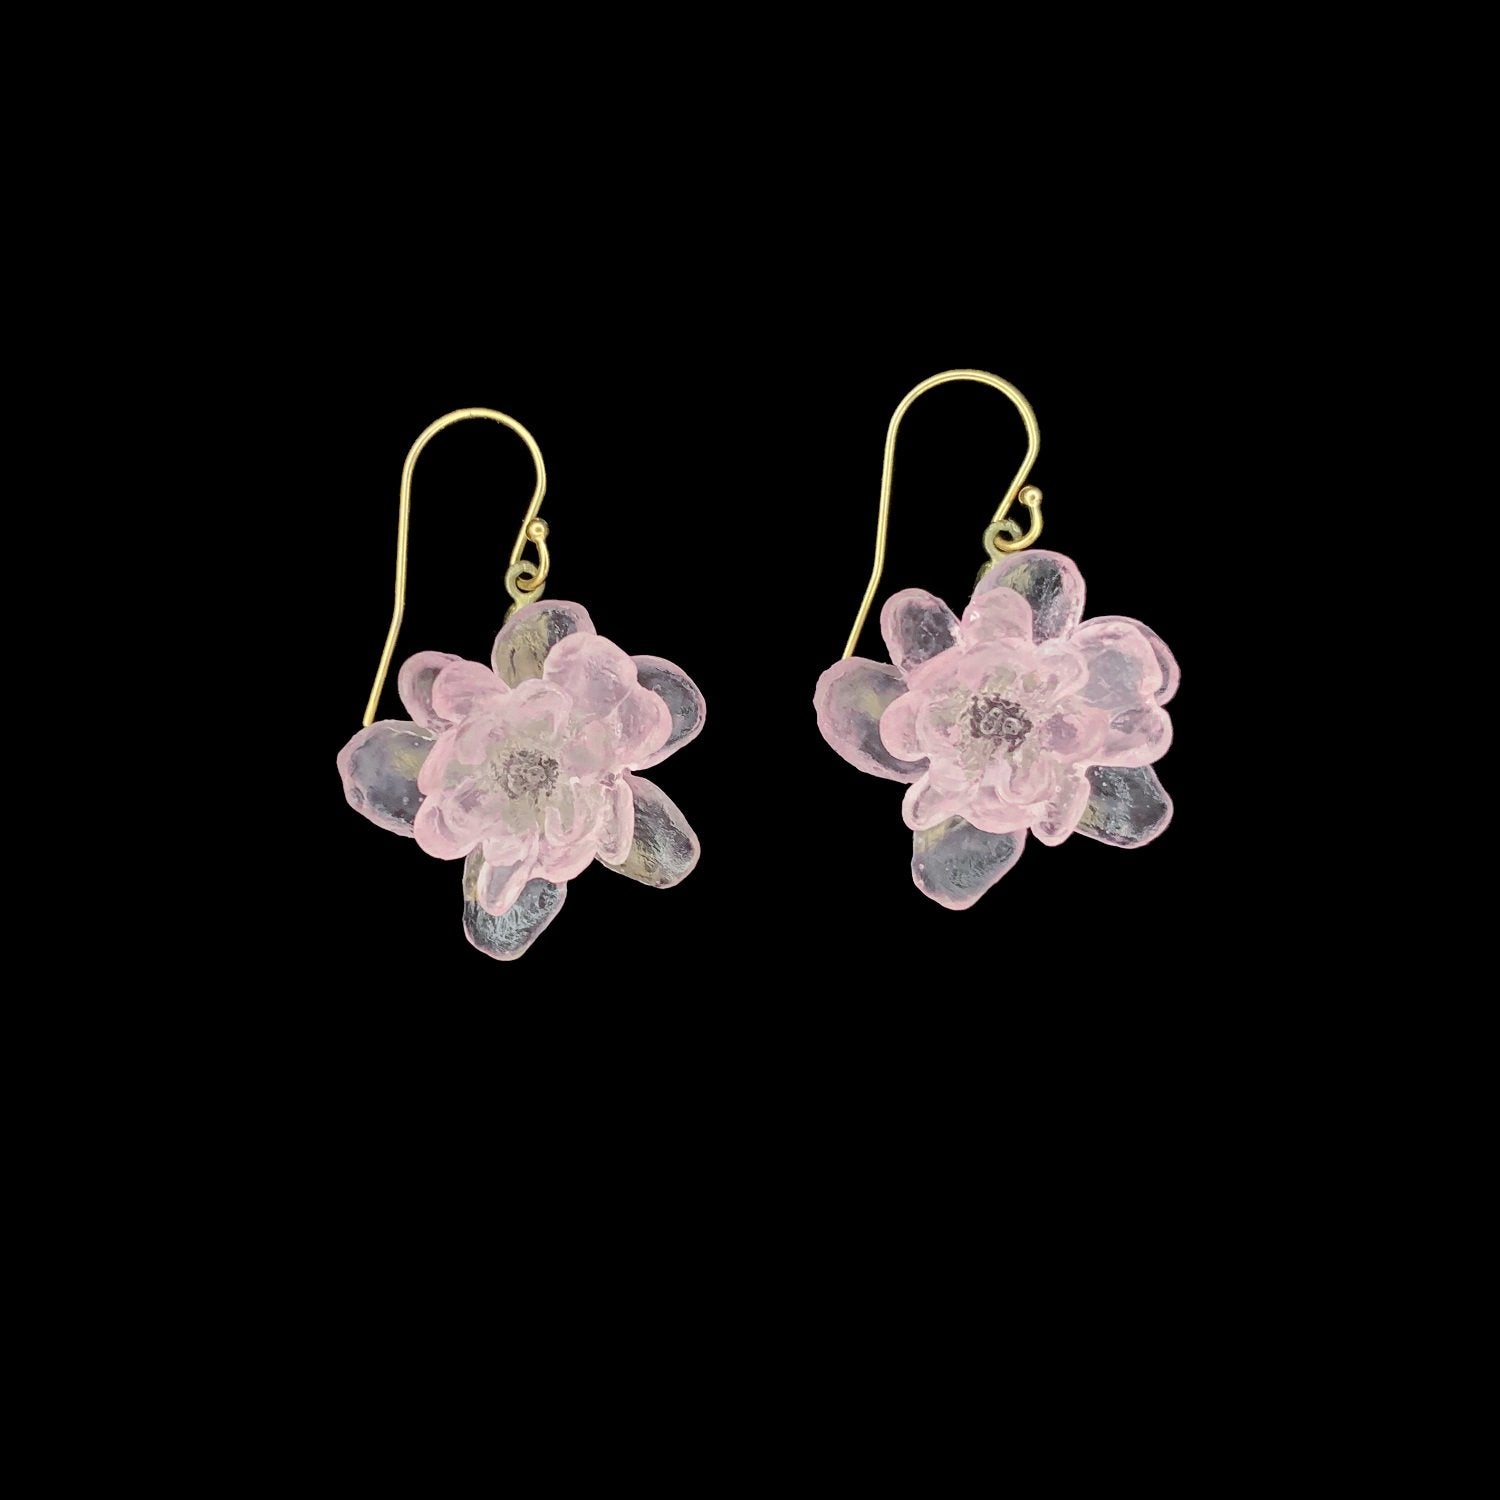 Blushing Rose Earrings - Wire